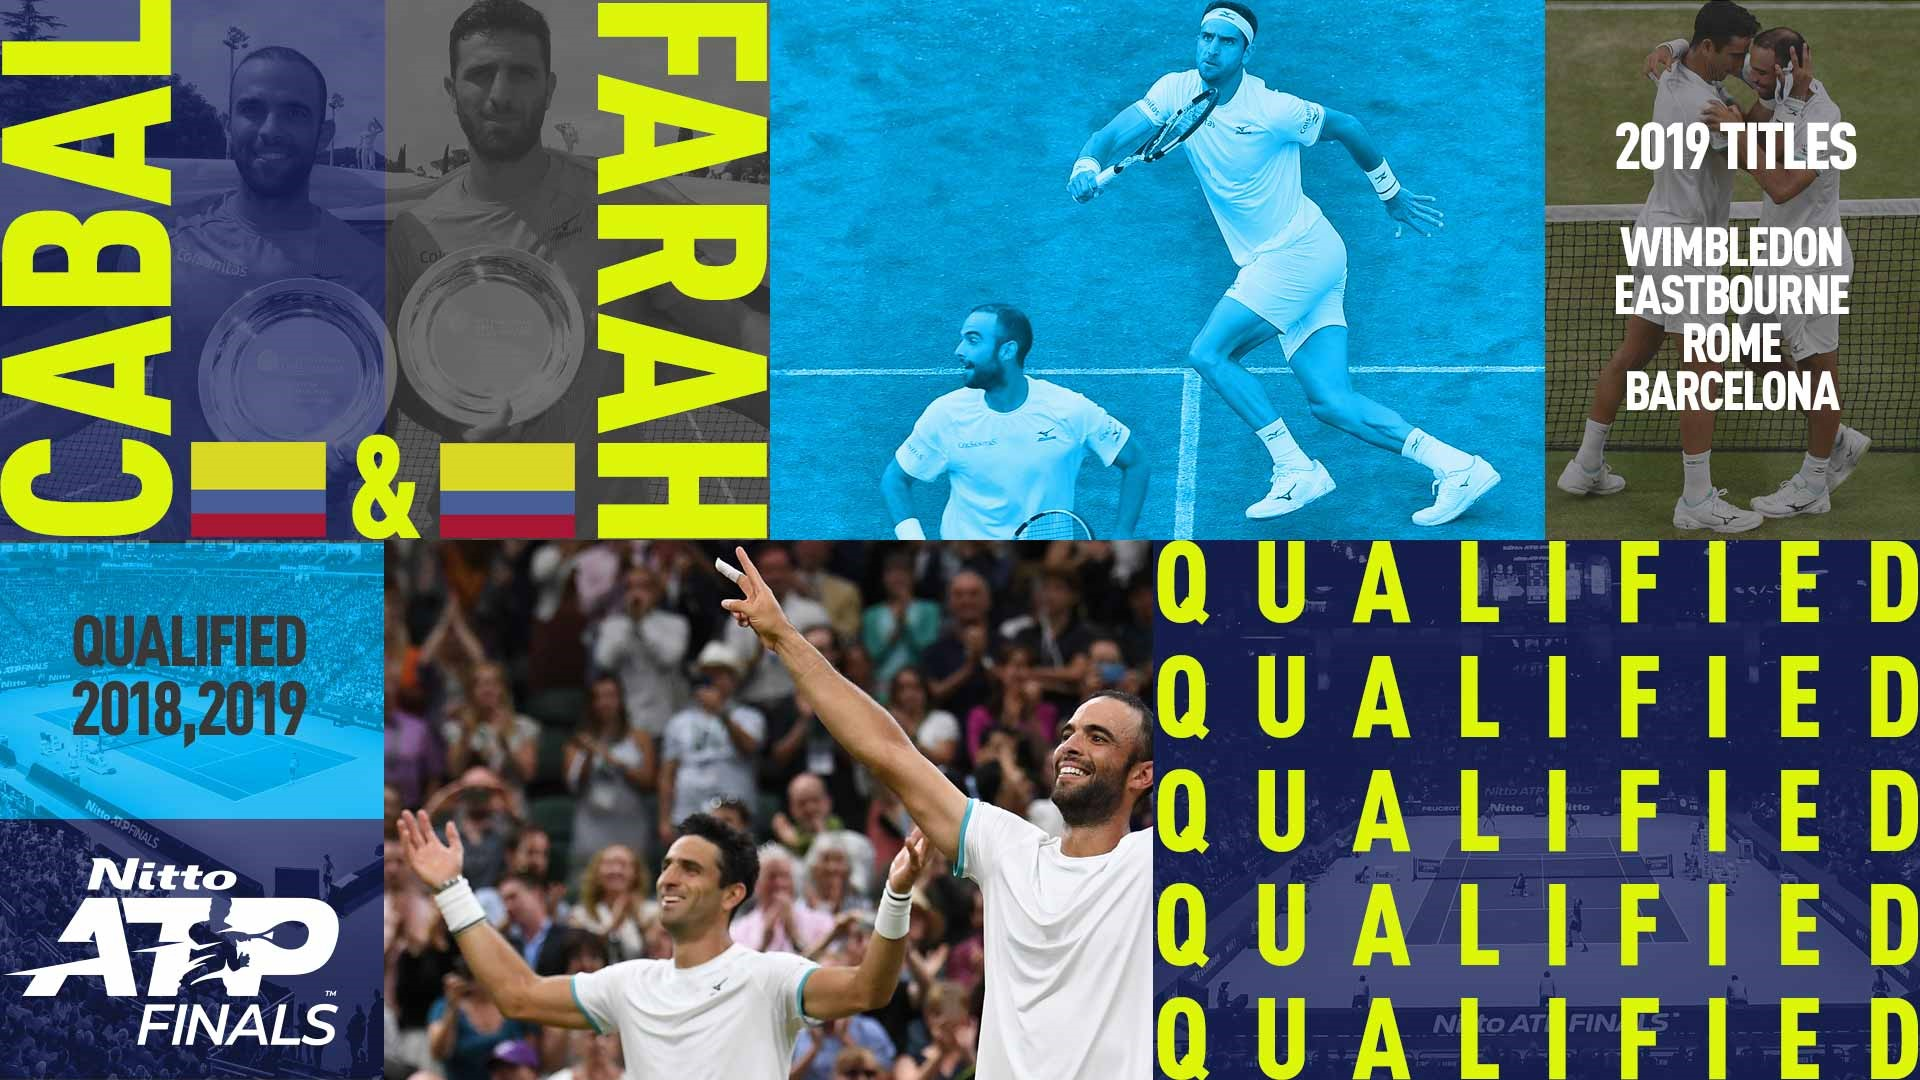 Juan Sebastian Cabal and Robert Farah have qualified for the Nitto ATP Finals for the second consecutive year.